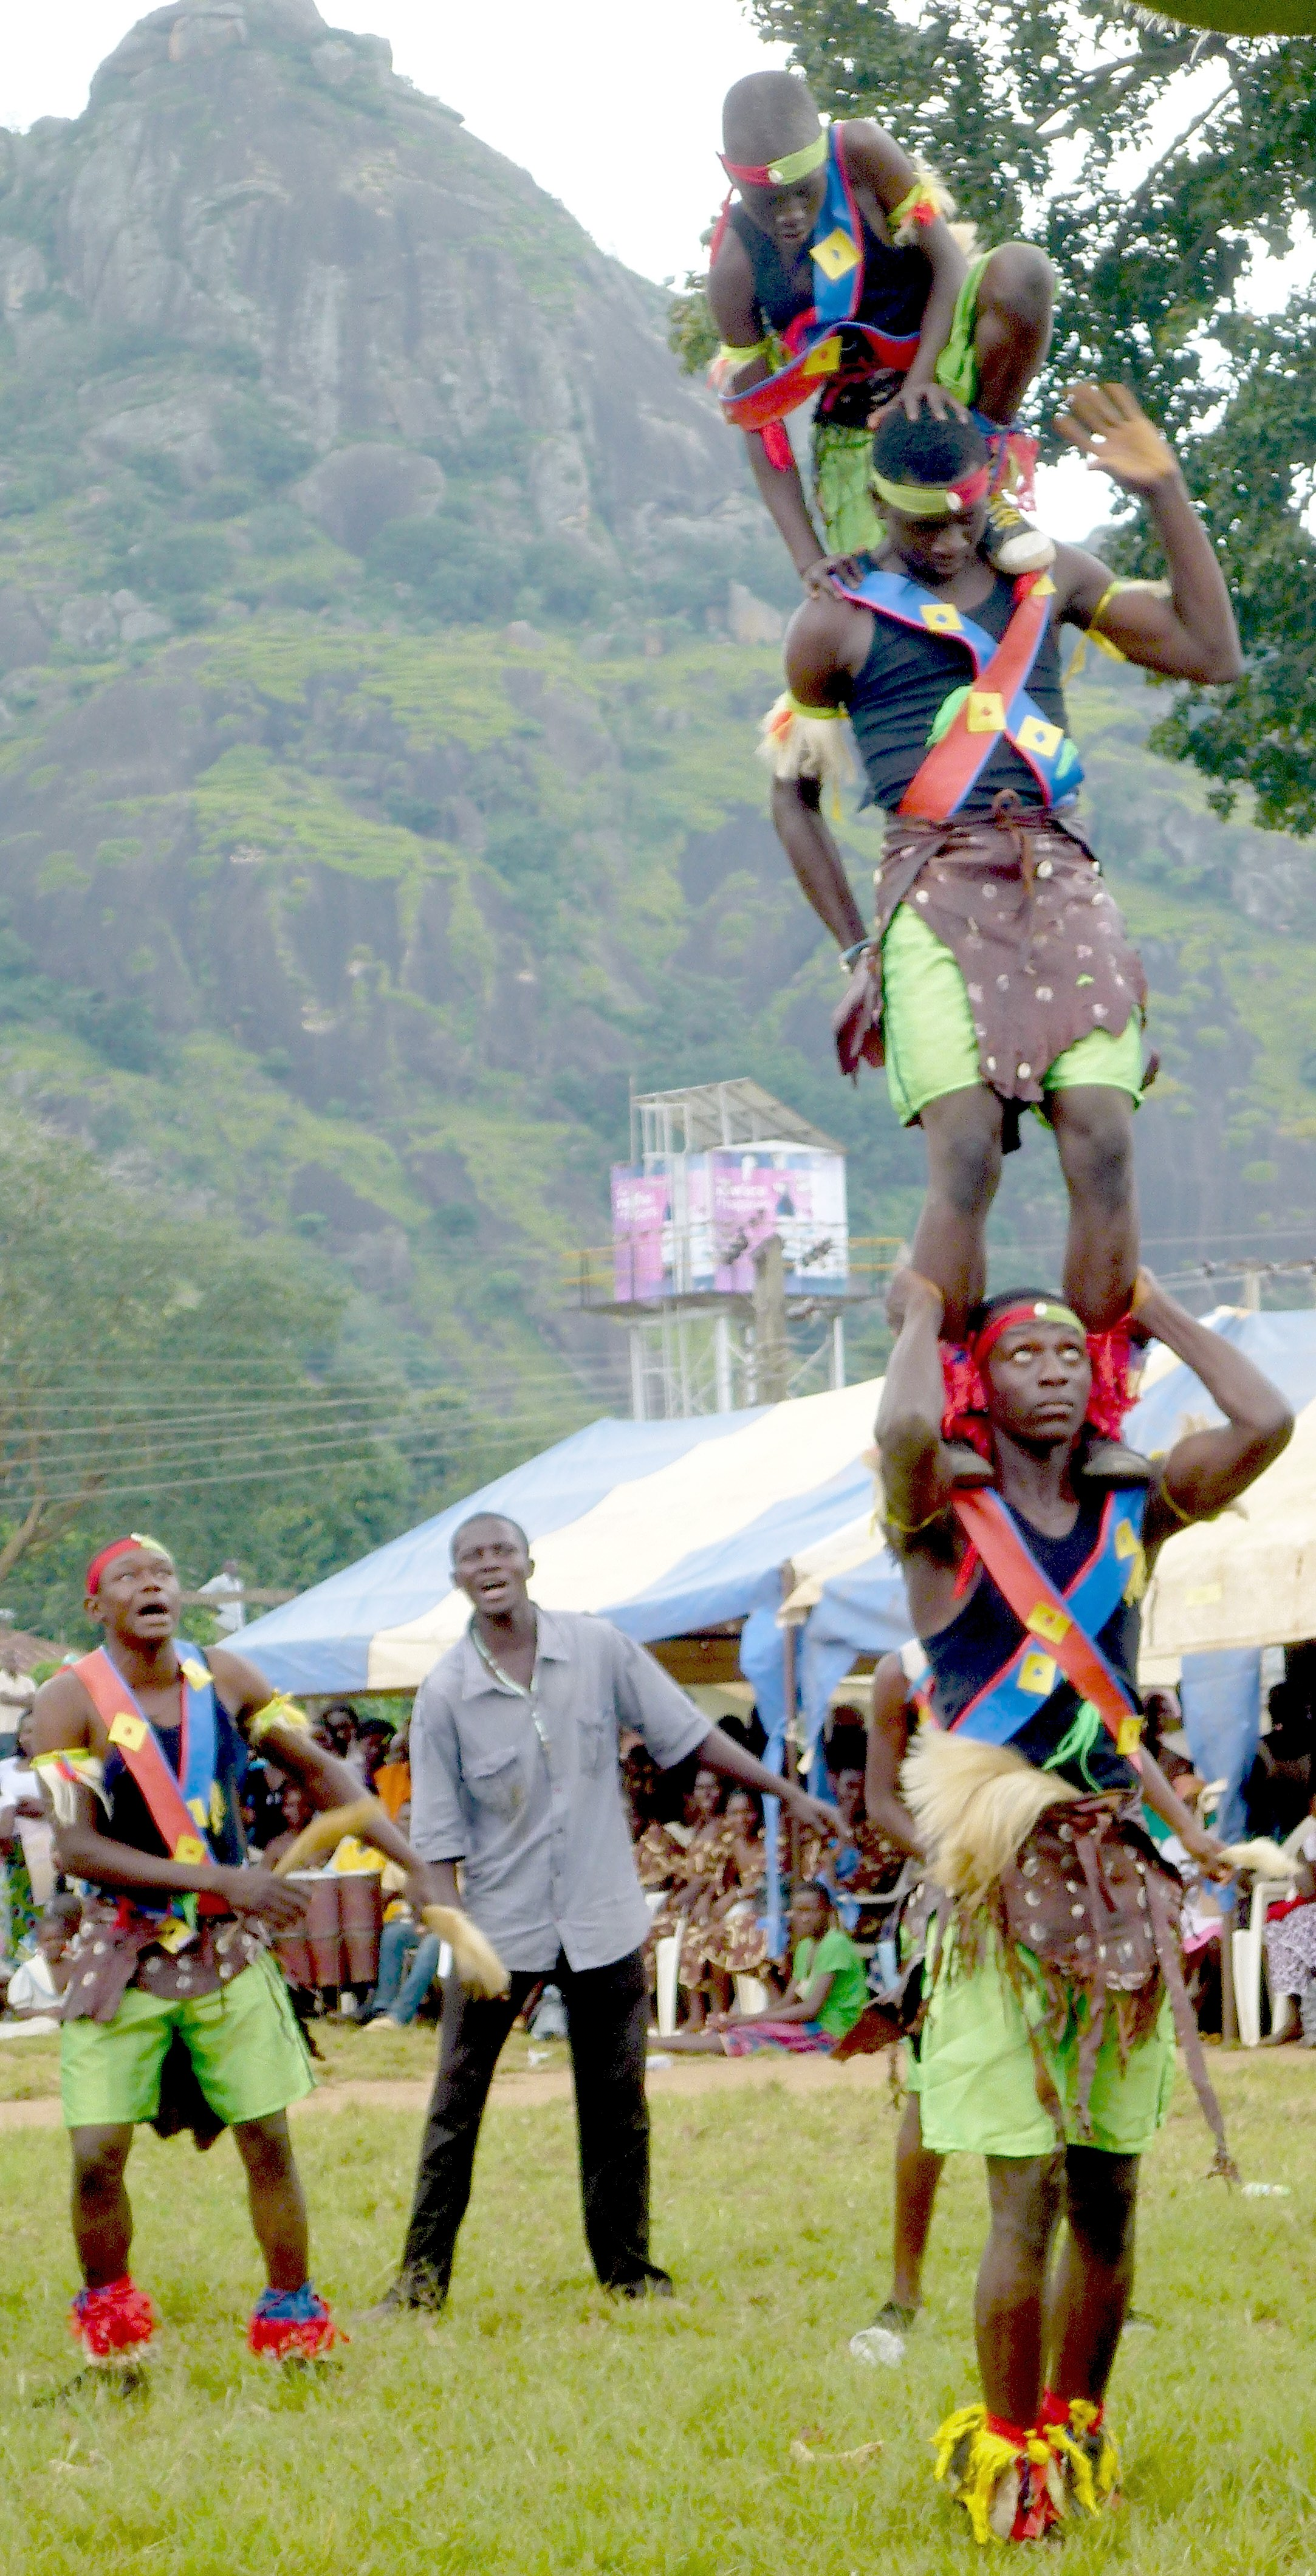 Several people balancing on each other to form a very precarious looking human tower at the Gworog traditional festival 2014